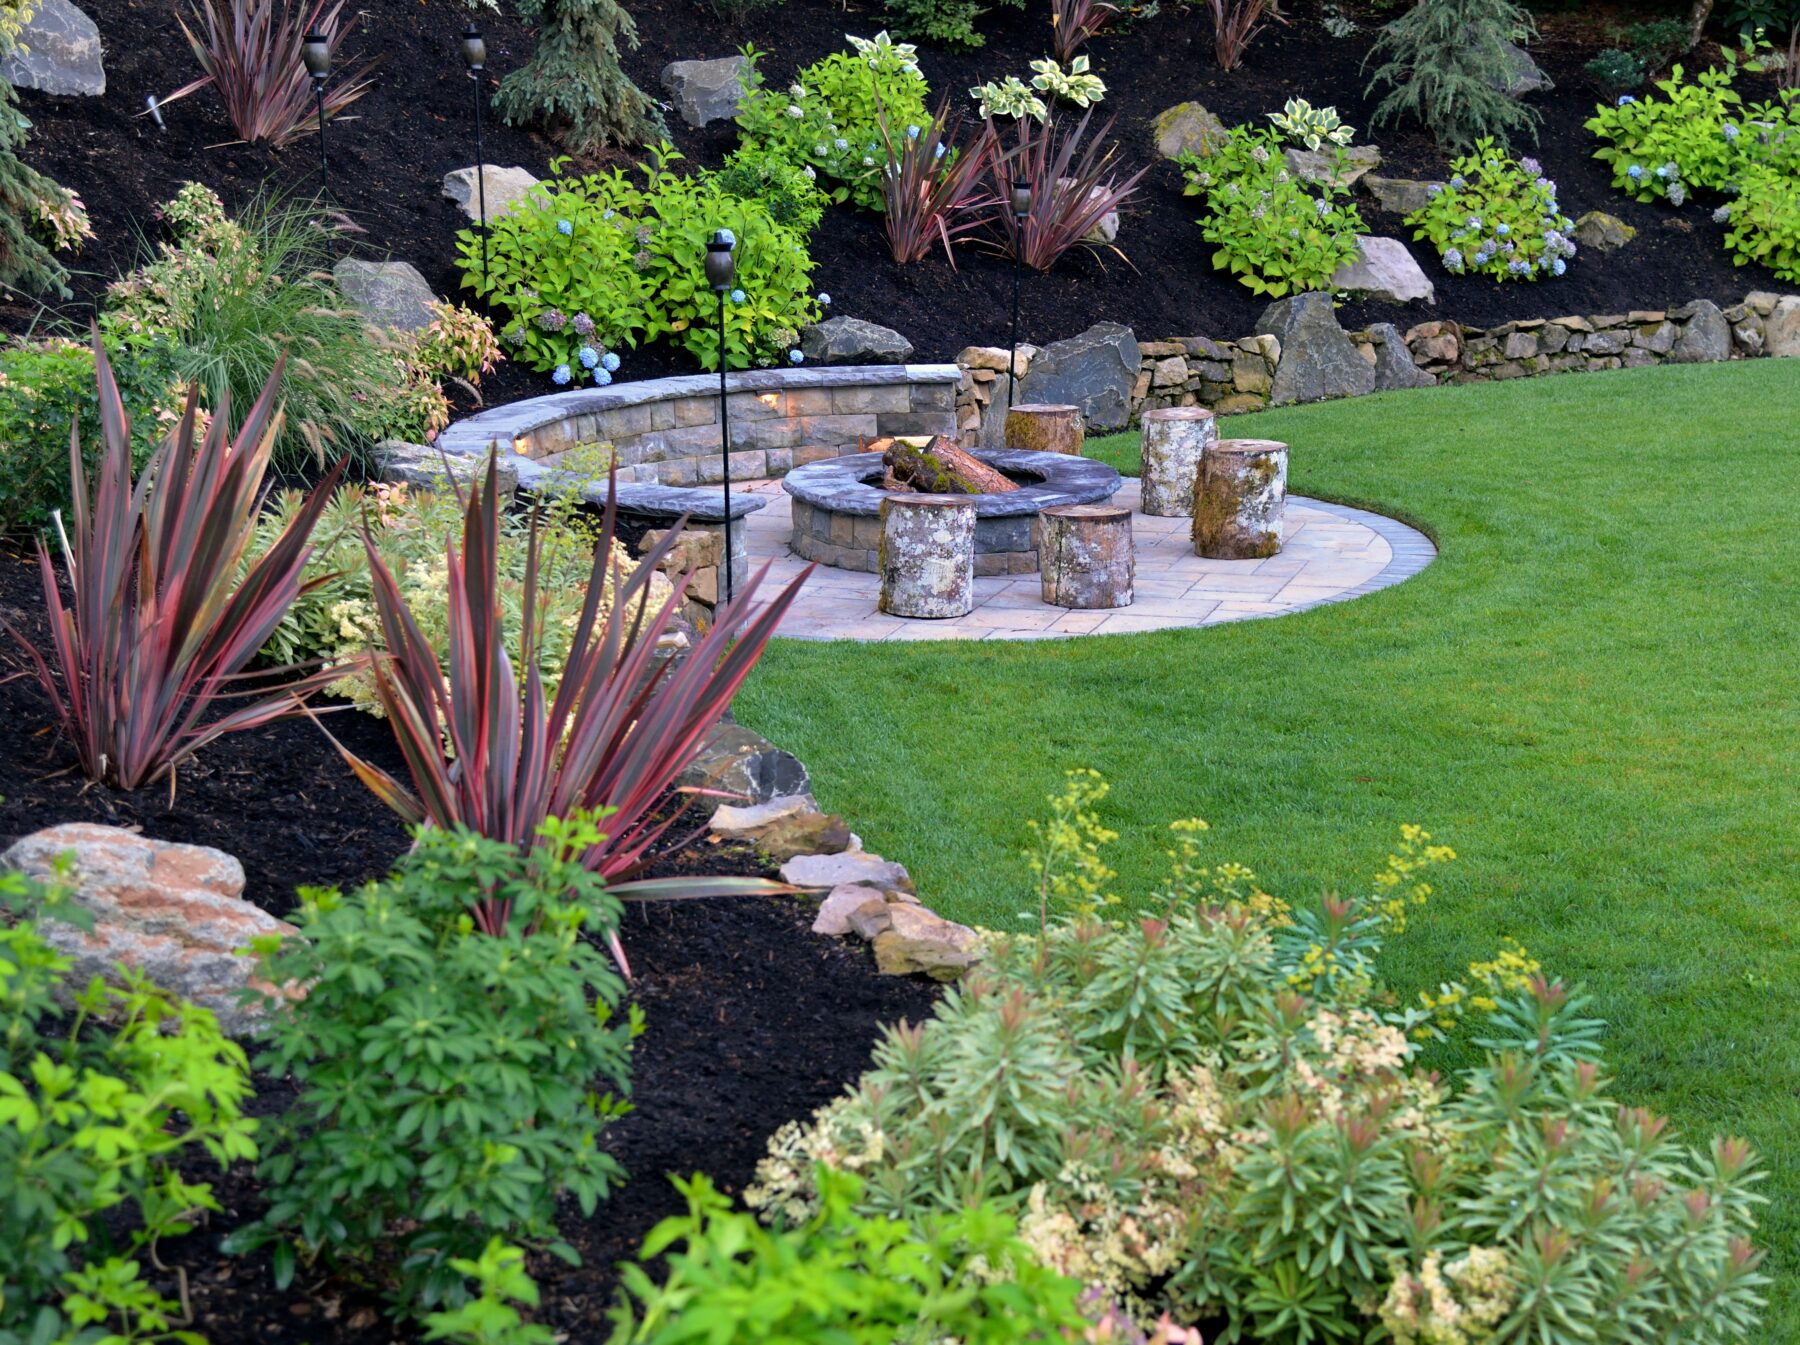 An example of Columbia City landscape design and landscape construction work